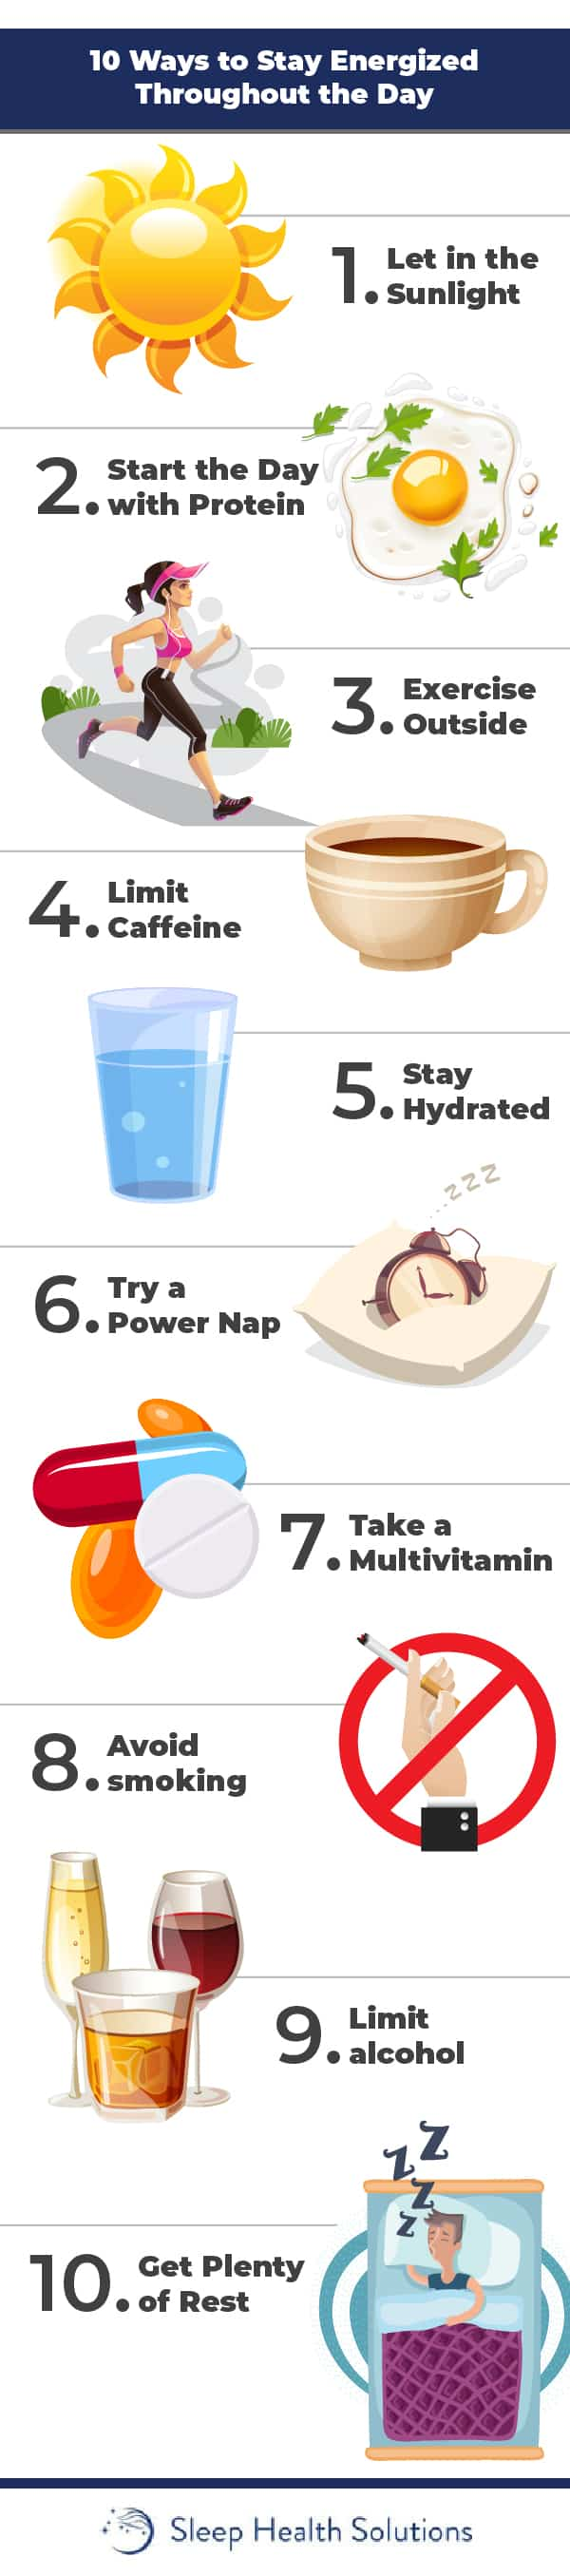 Infographic showing 10 simple ways to boost daytime energy.